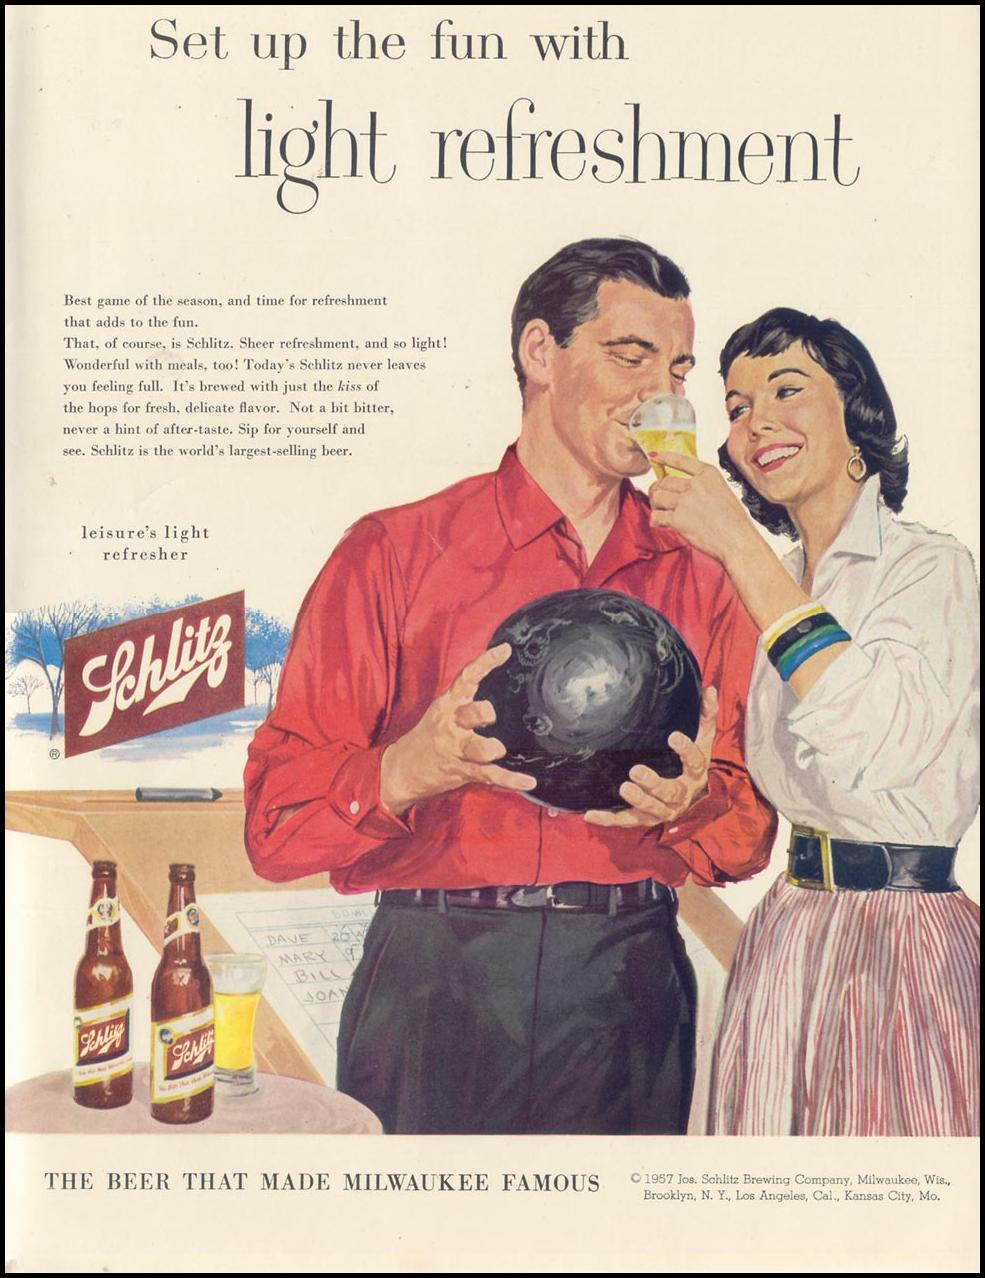 SCHLITZ BEER LIFE 01/21/1957 INSIDE BACK